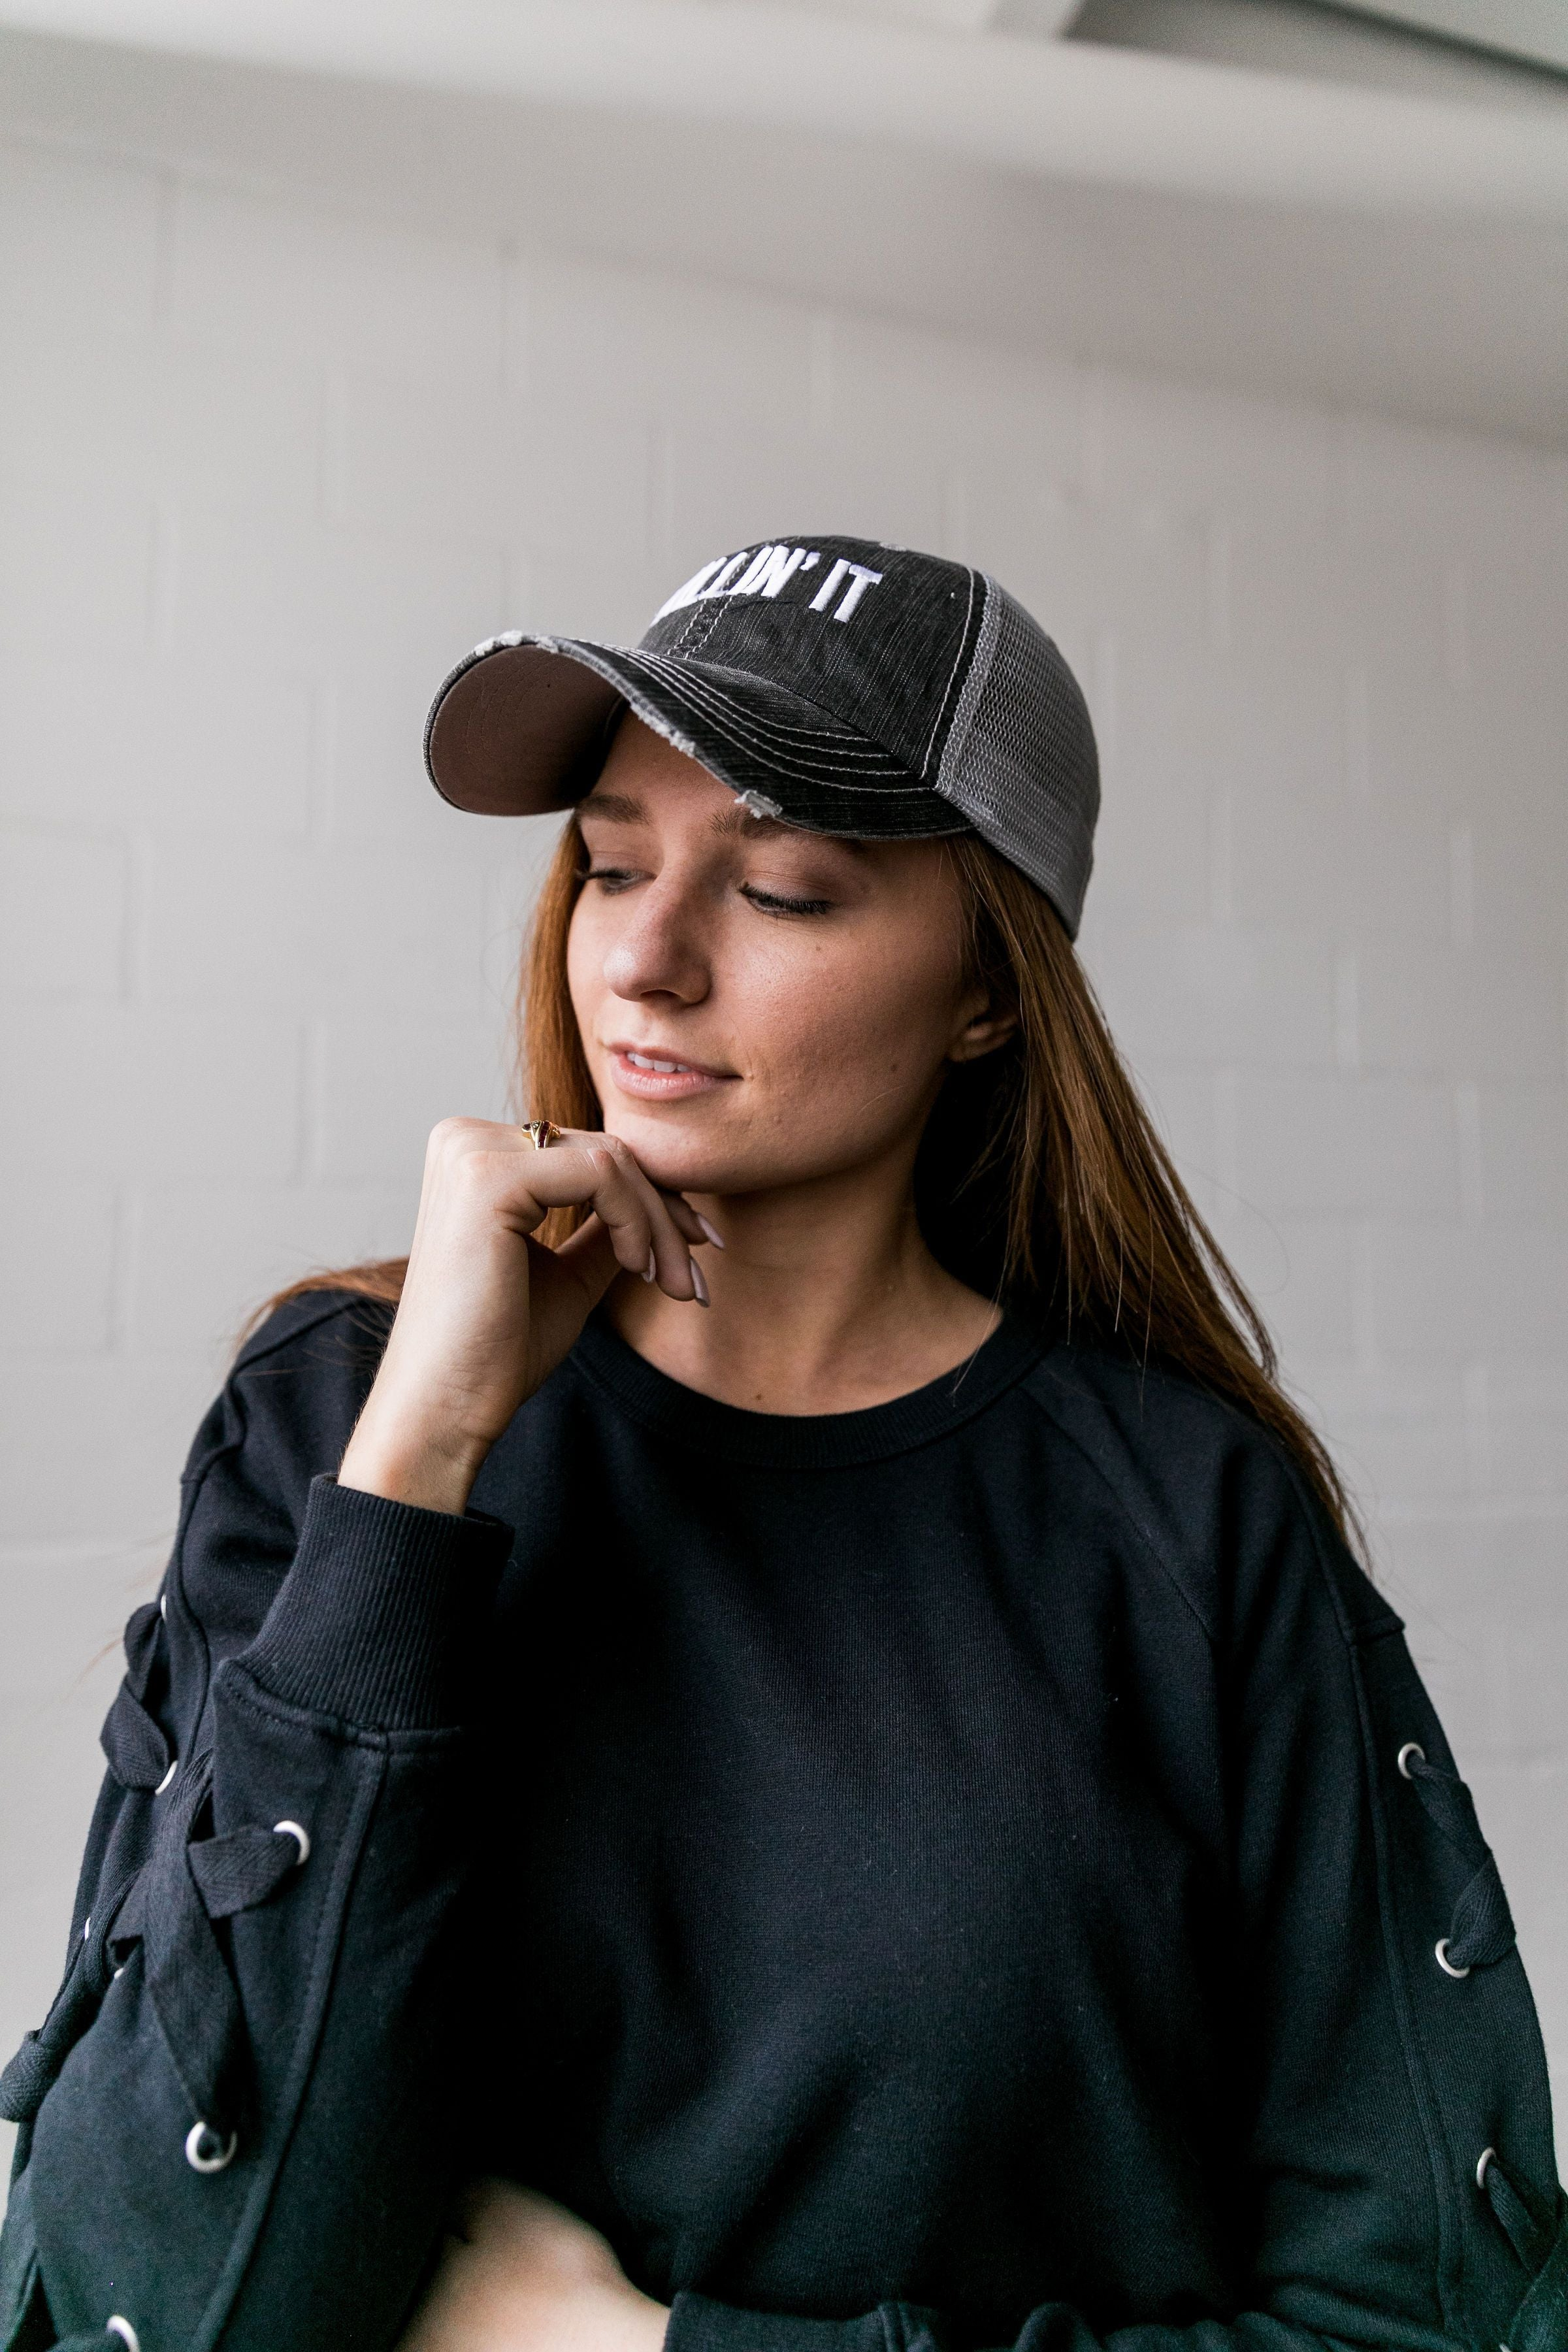 Killin' It Trucker Hat - ALL SALES FINAL